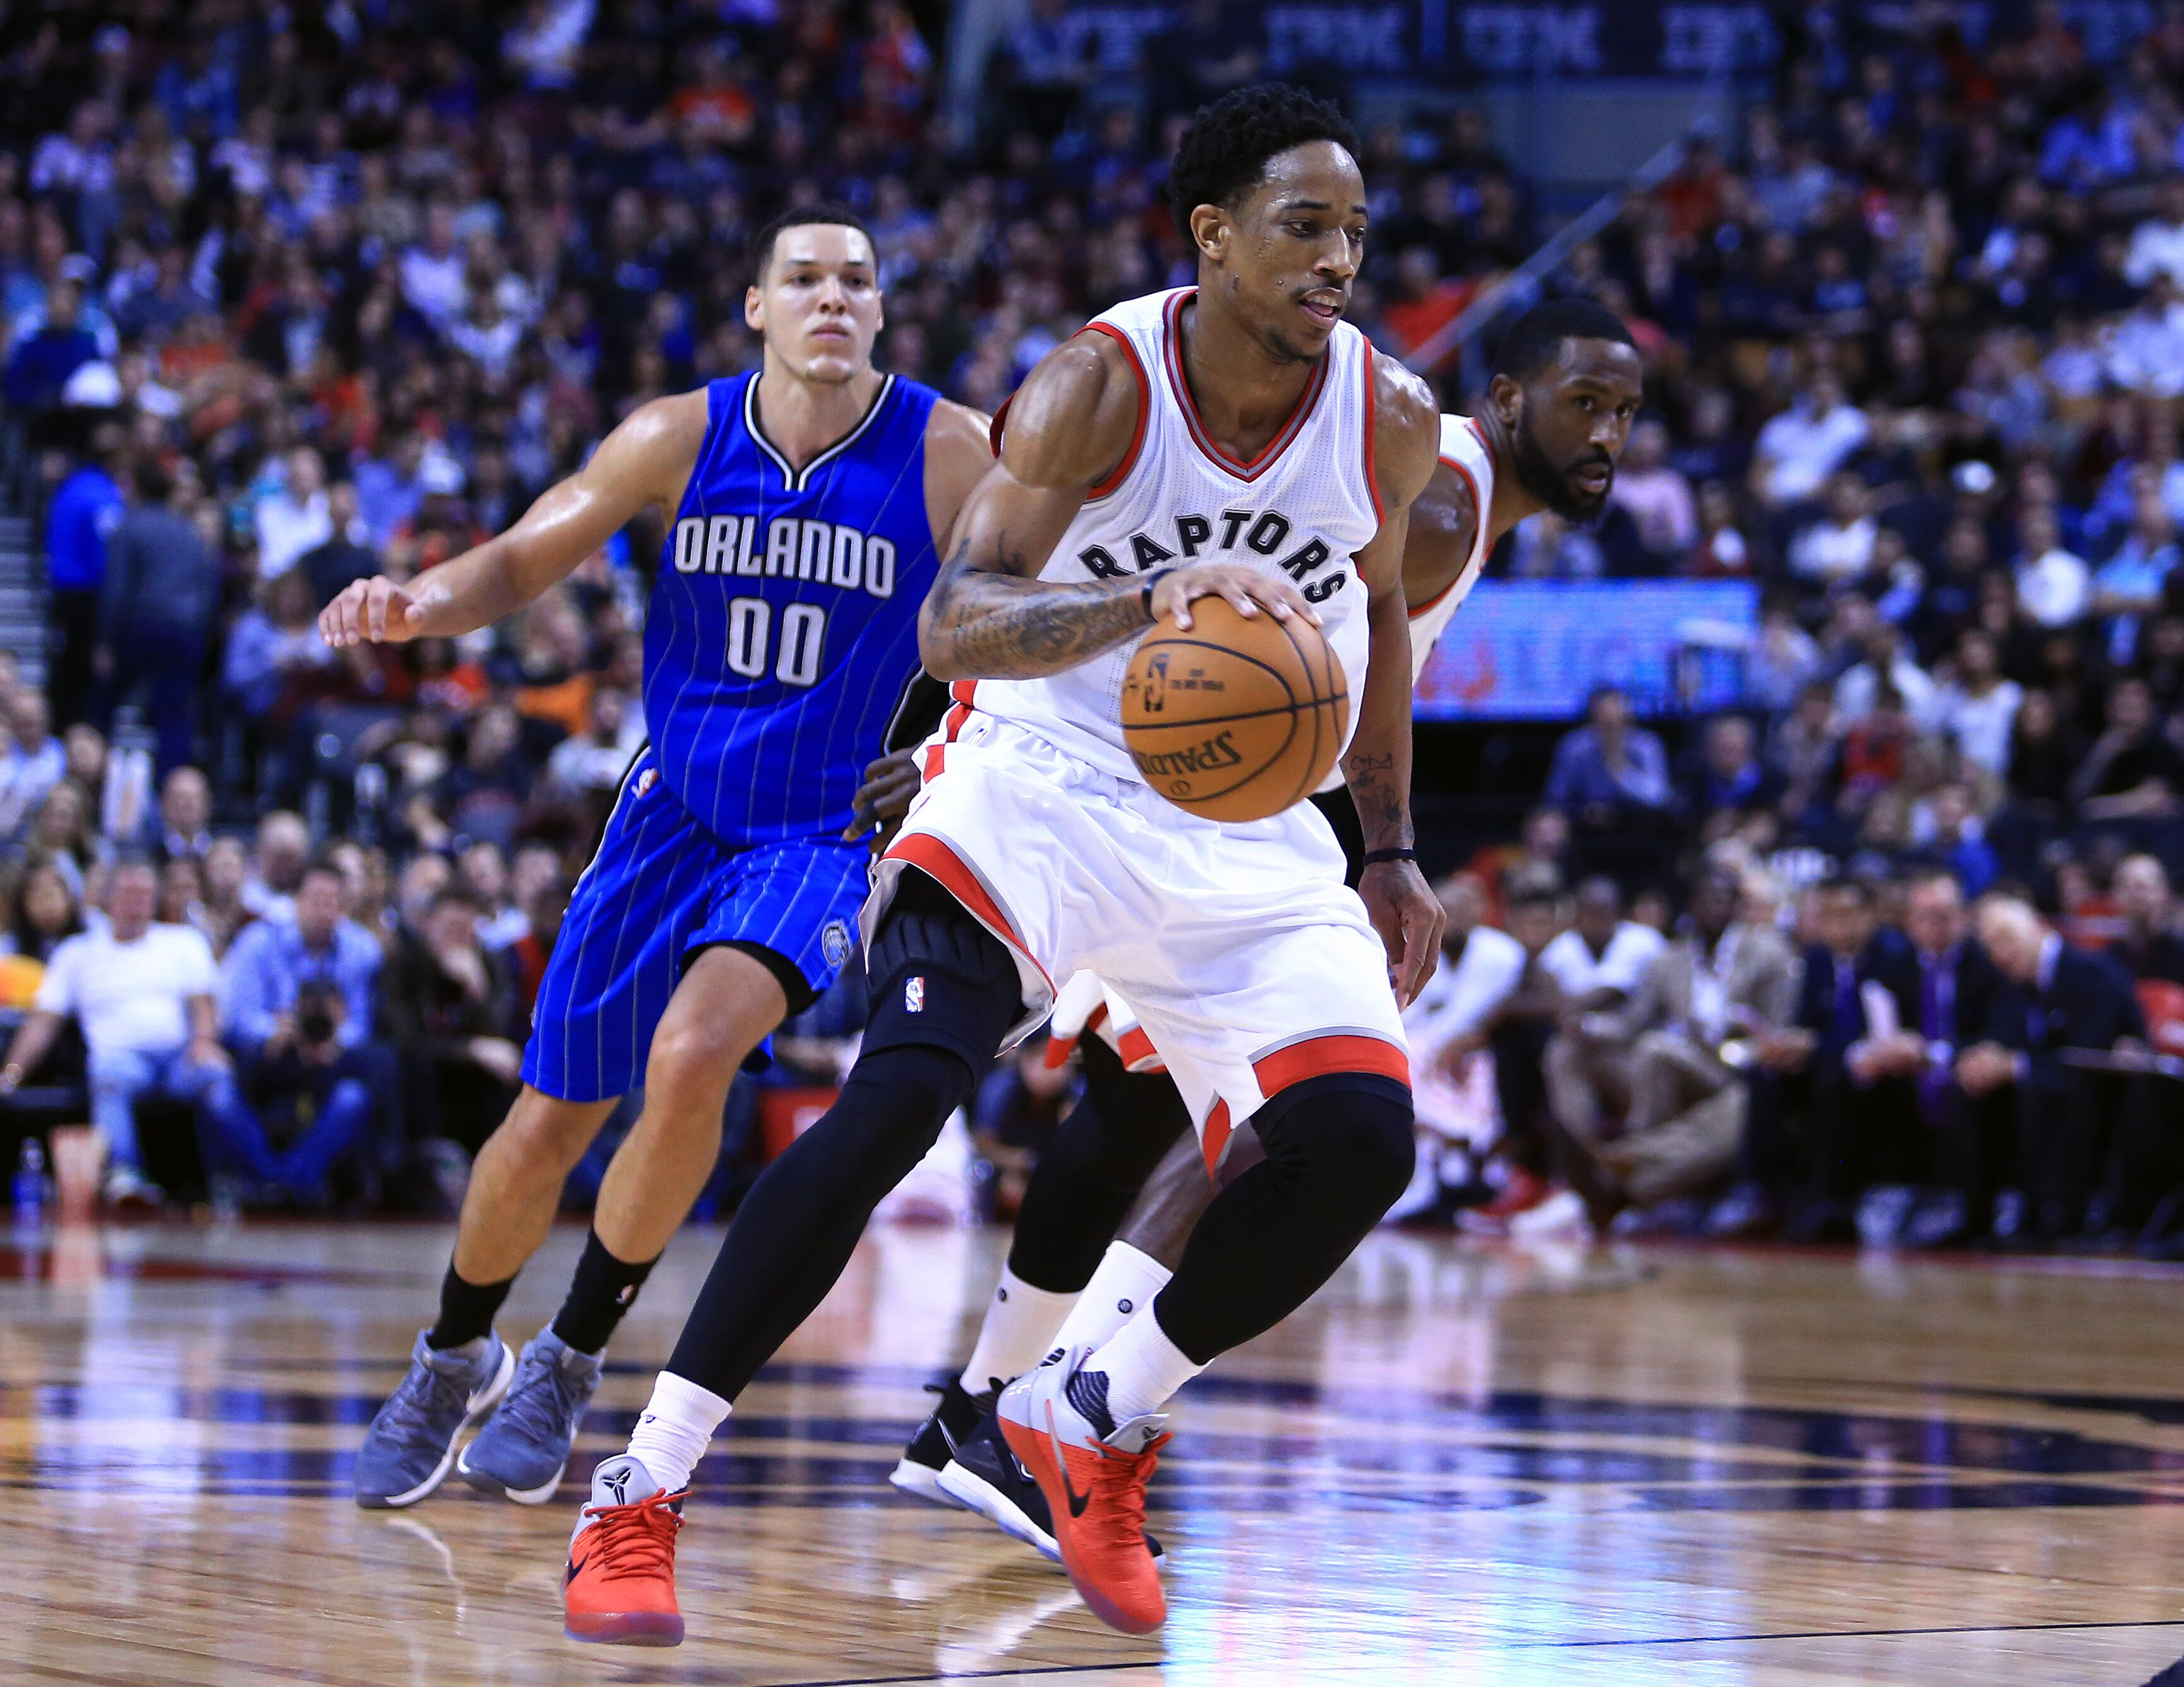 663799962-orlando-magic-v-toronto-raptors.jpg